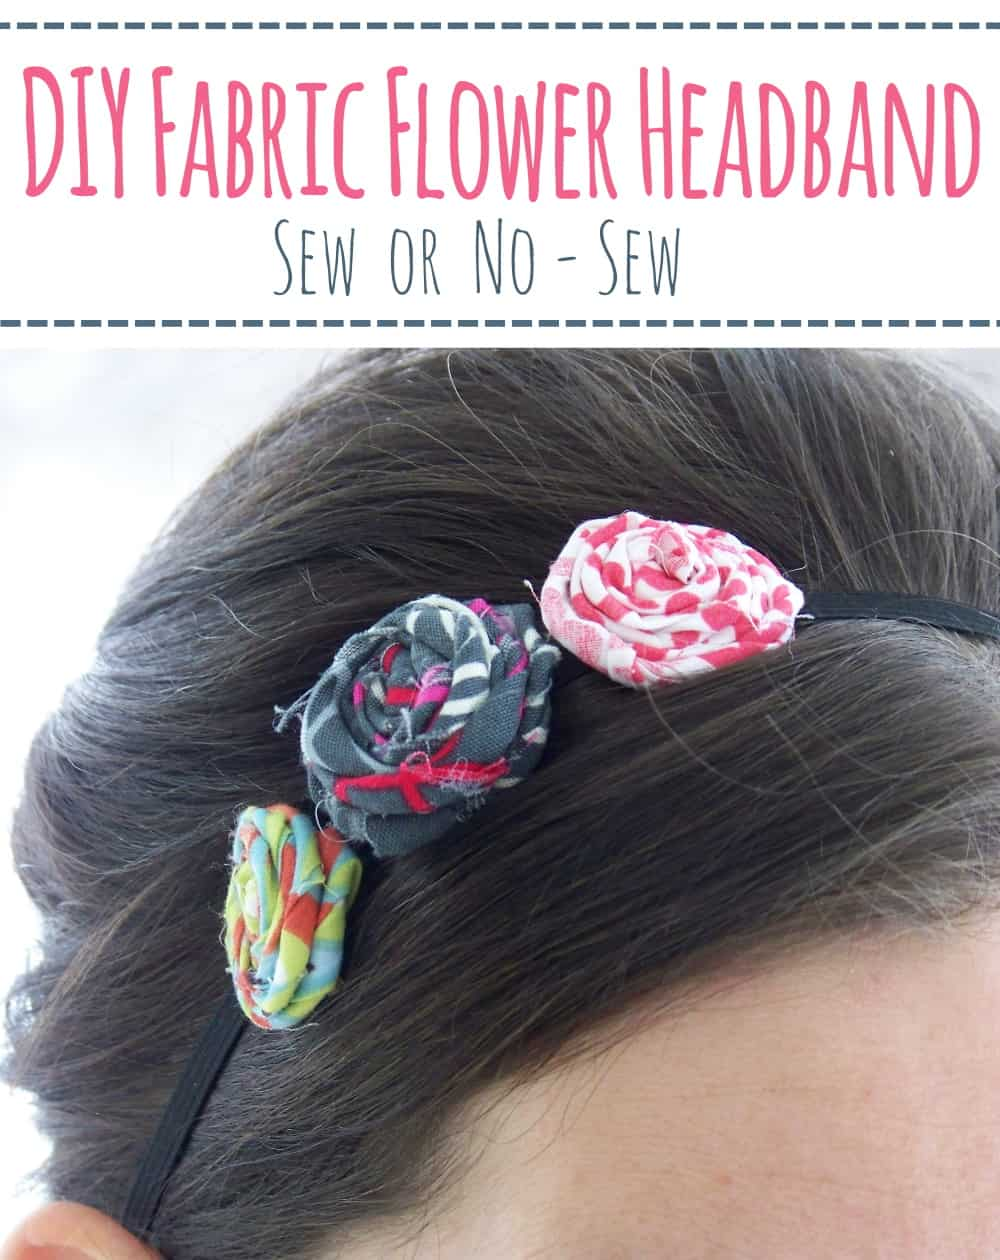 DIY Fabric Flower Headband- Learn how to make a fabric flower headband following this easy tutorial. #diyflowerheadband #fabricflowerheadband #diyheadband